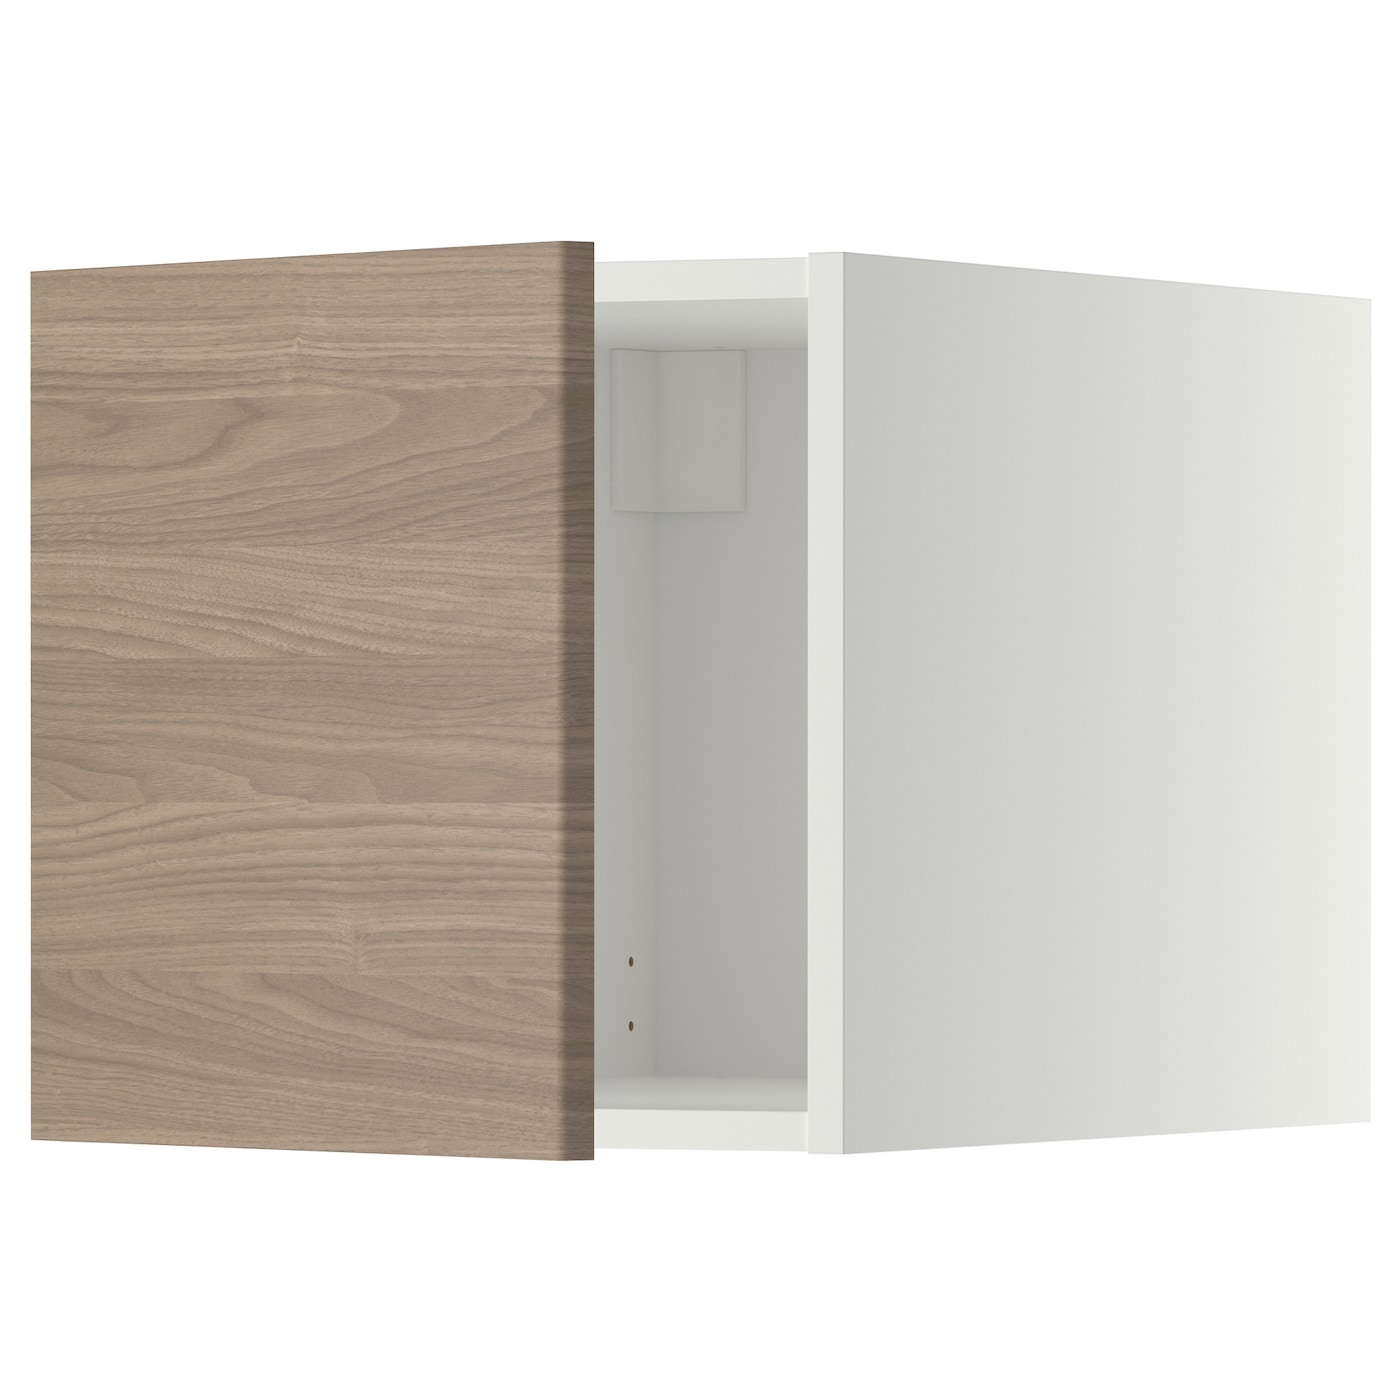 IKEA METOD Top Cabinet You Can Choose To Mount The Door On The Right  #776654 2000 2000 Ripiani Per Pensili Cucina Ikea